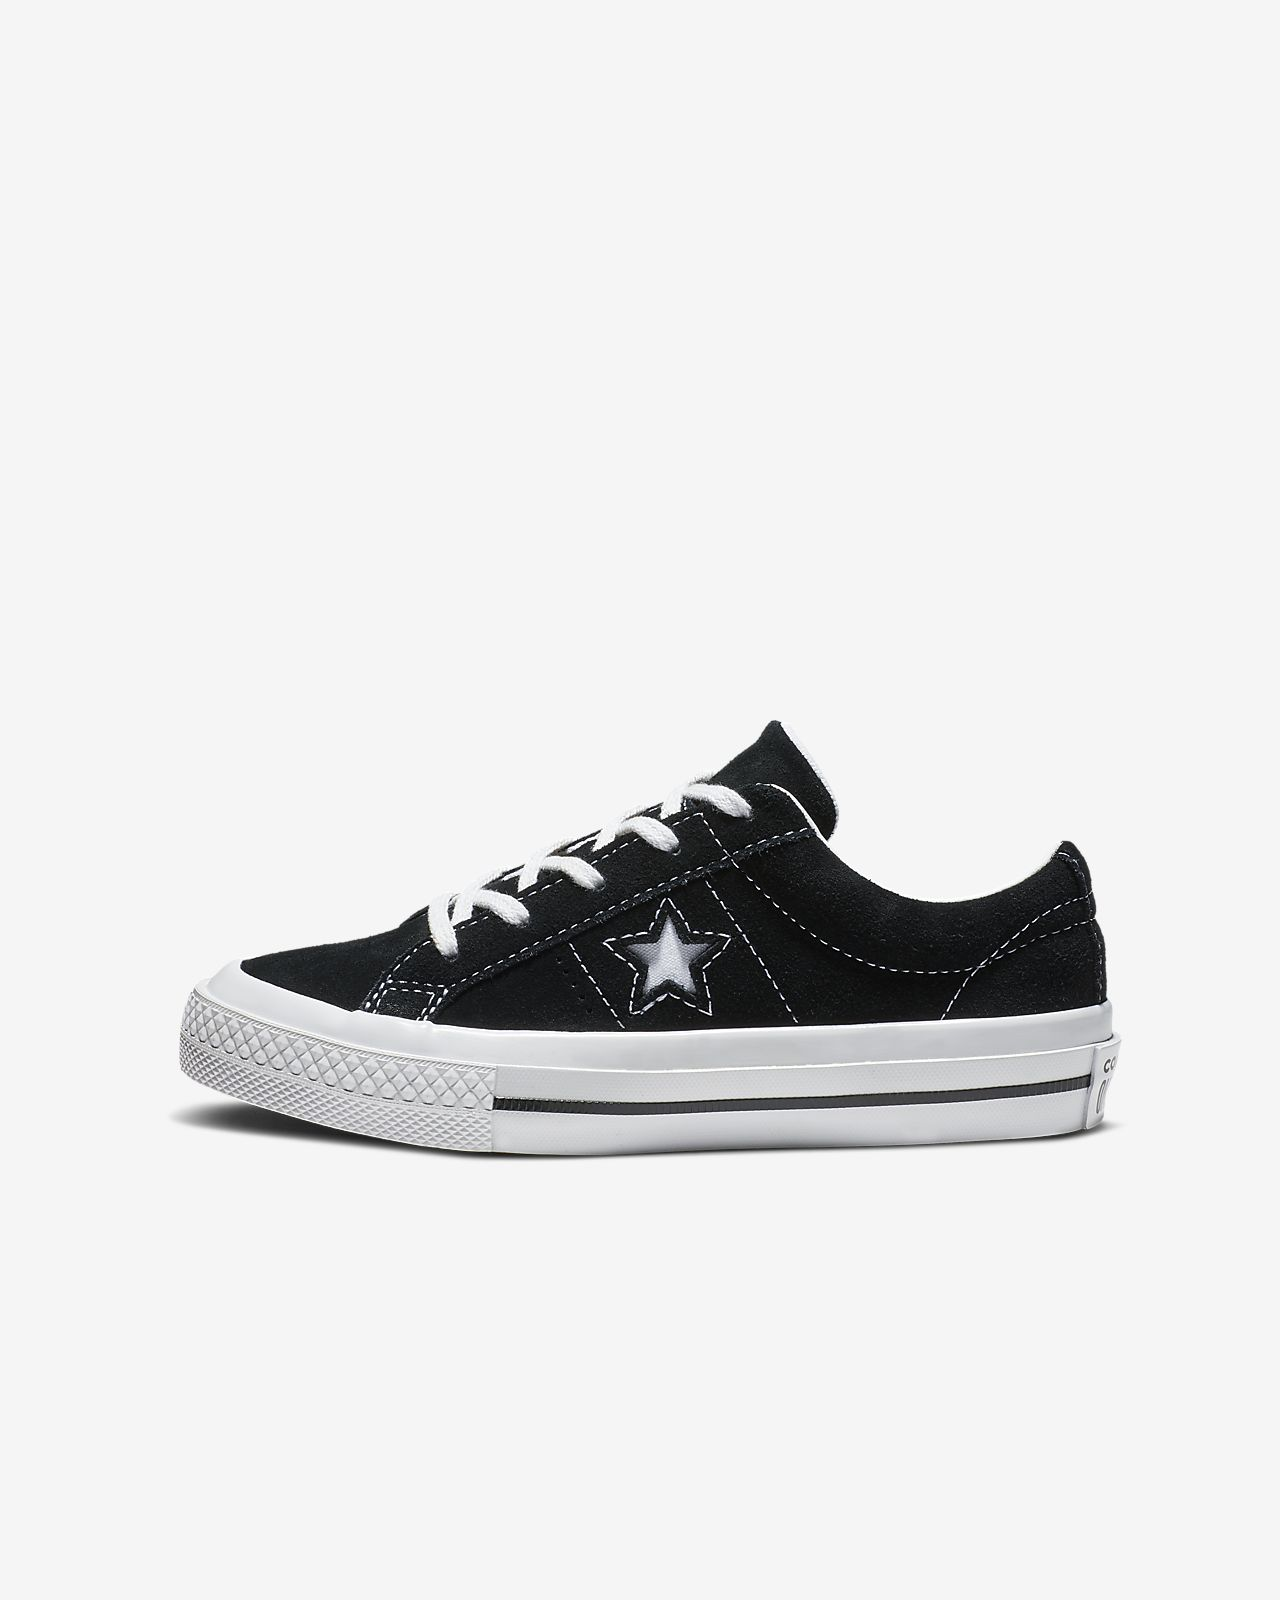 516f27d2647 ... discount code for converse one star vintage suede low top big kids shoe  faa0f c42c9